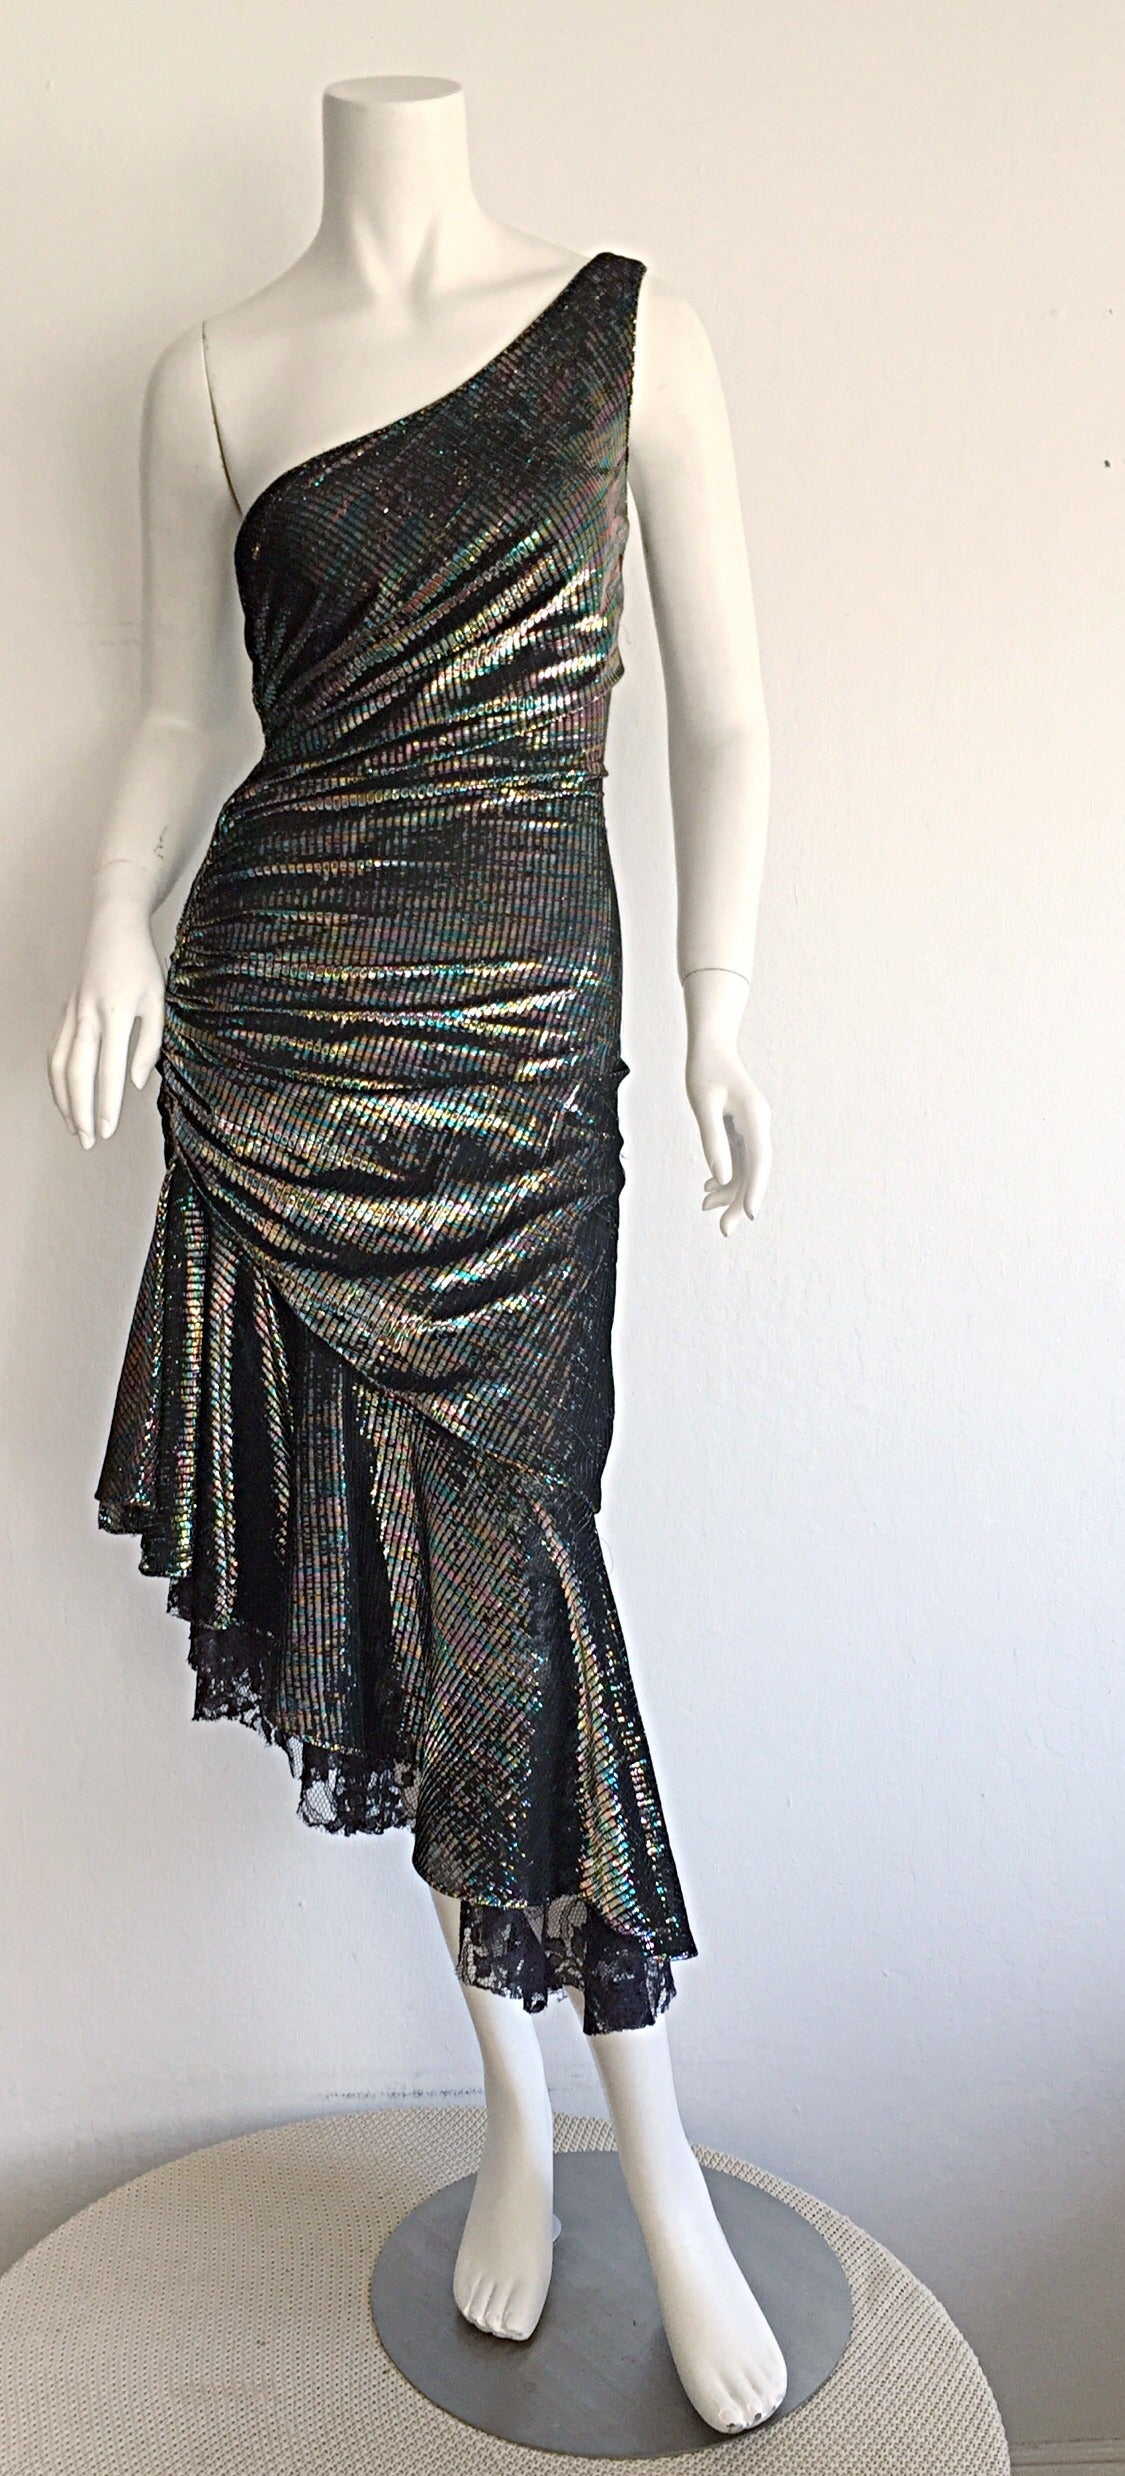 Stunning 1970s Samir One - Shoulder Metallic Rainbow Iridescent Cocktail Dress 9